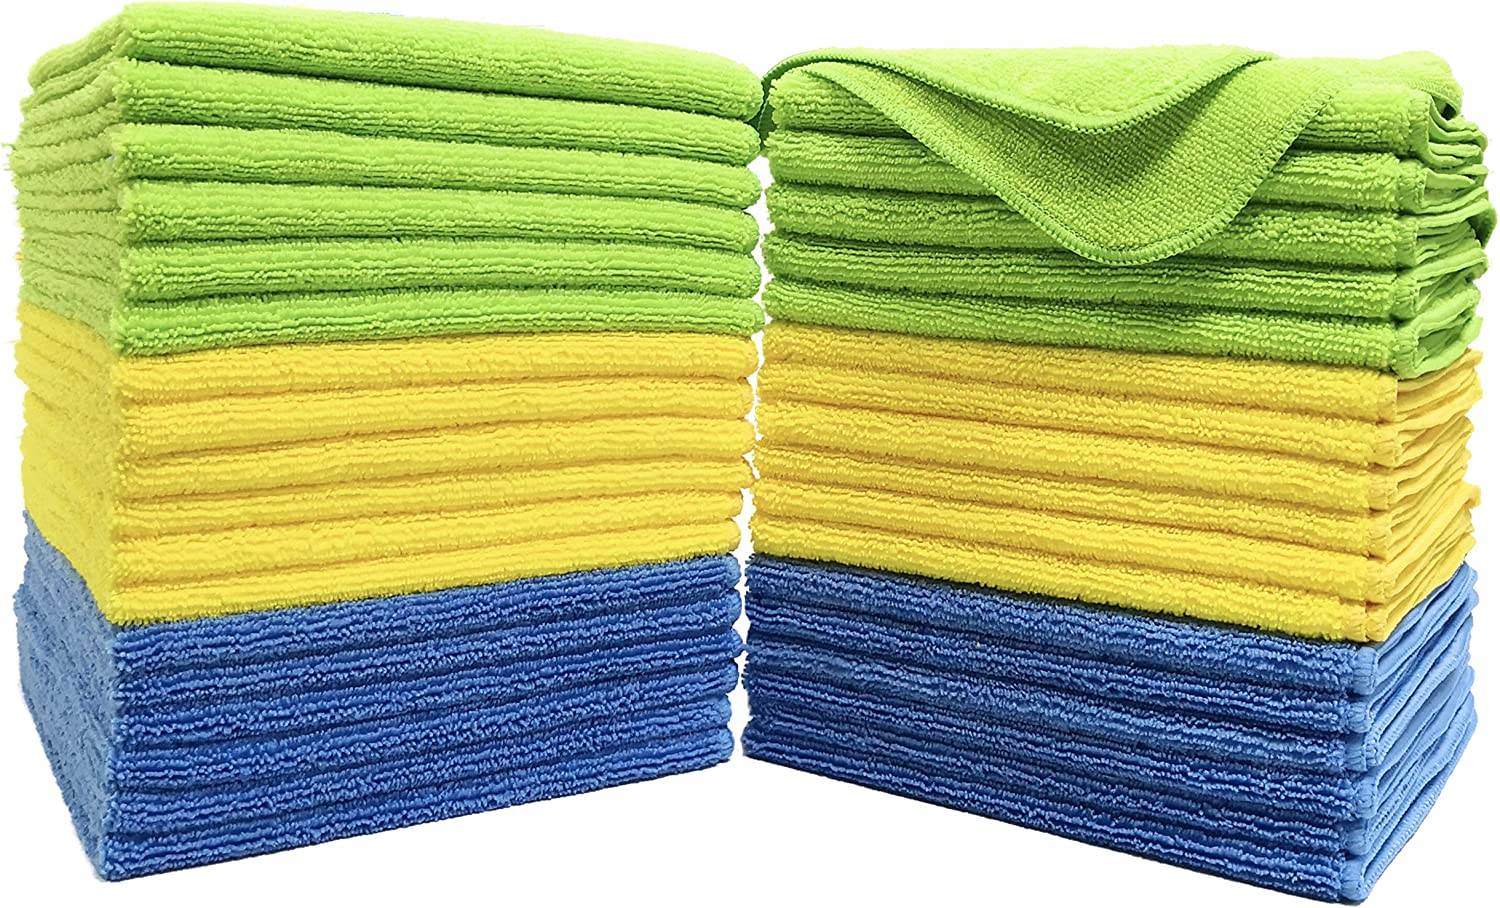 """240 Case 16/""""x16/"""" Economy Grade Microfiber Cleaning Cloths Towels 220GSM Pink"""